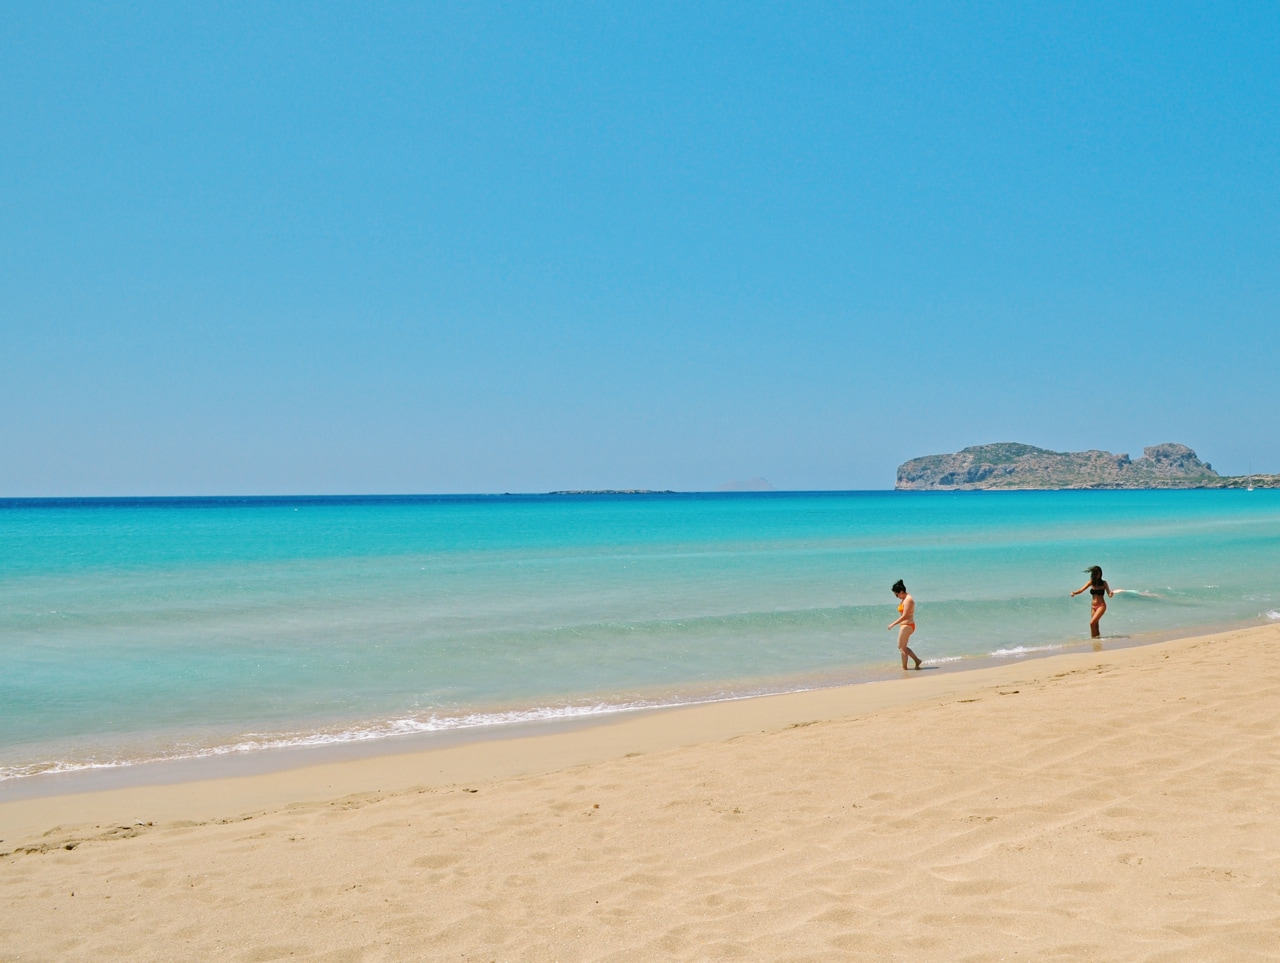 Travel Guide: Top-10 beaches on the Greek island of Crete